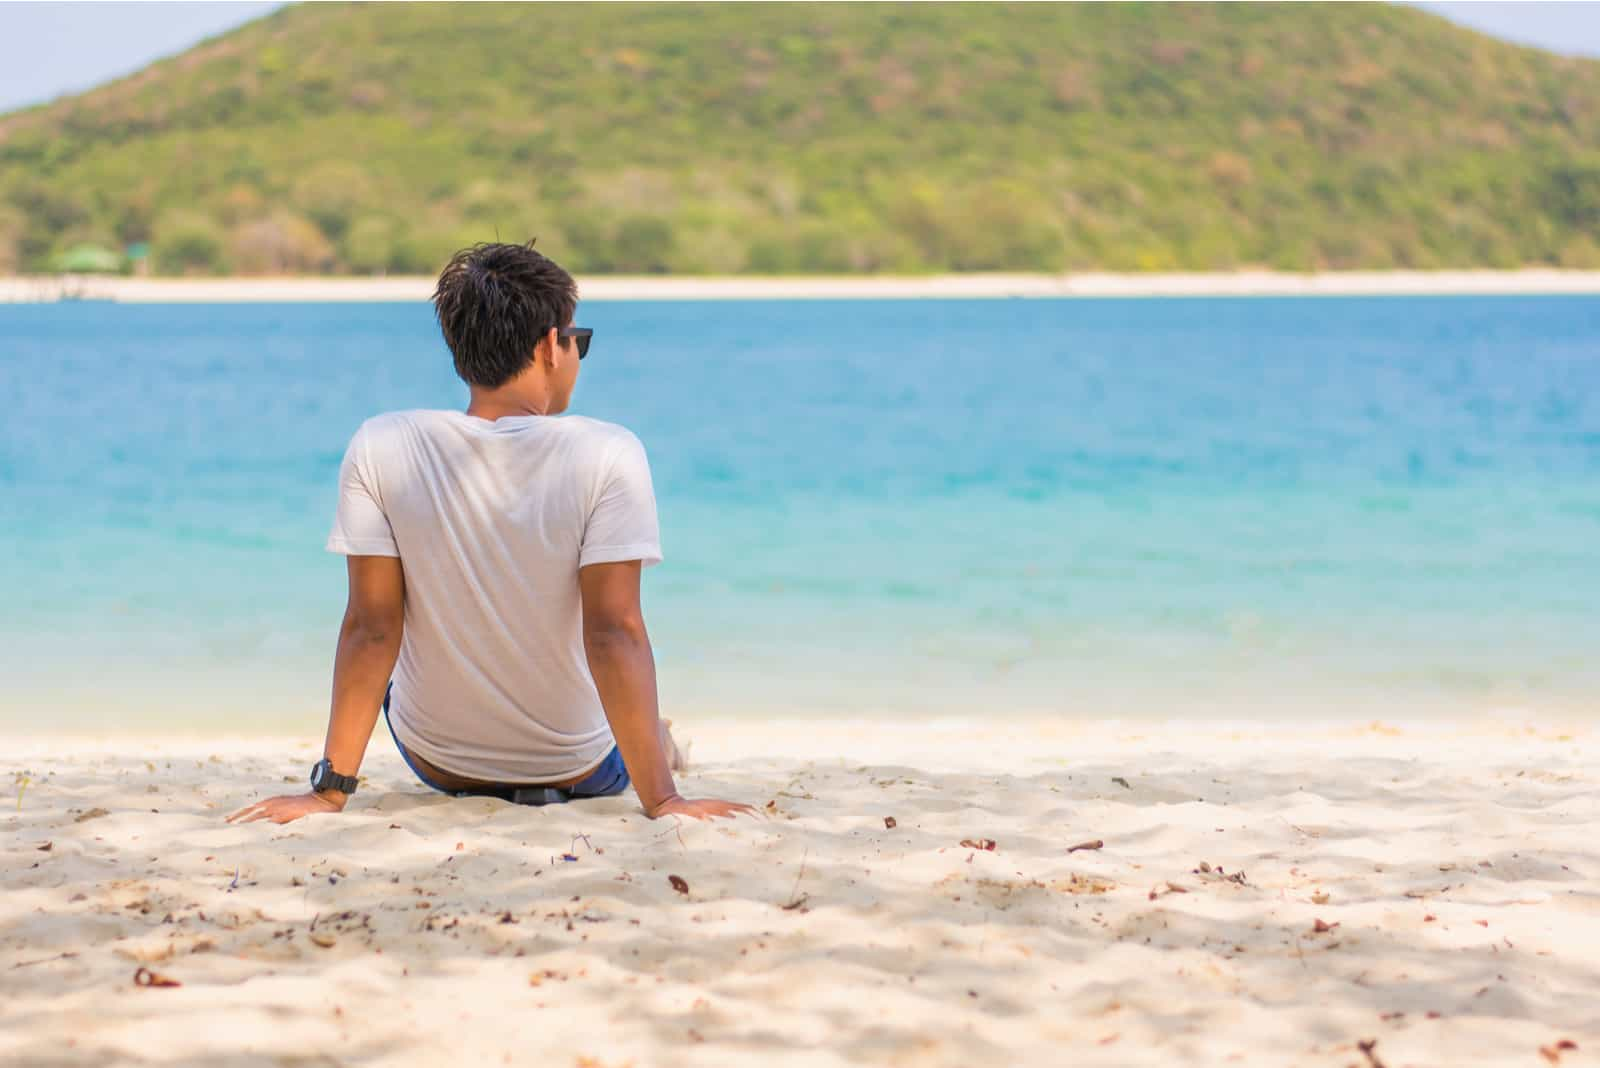 a man sits on the beach and looks out to sea